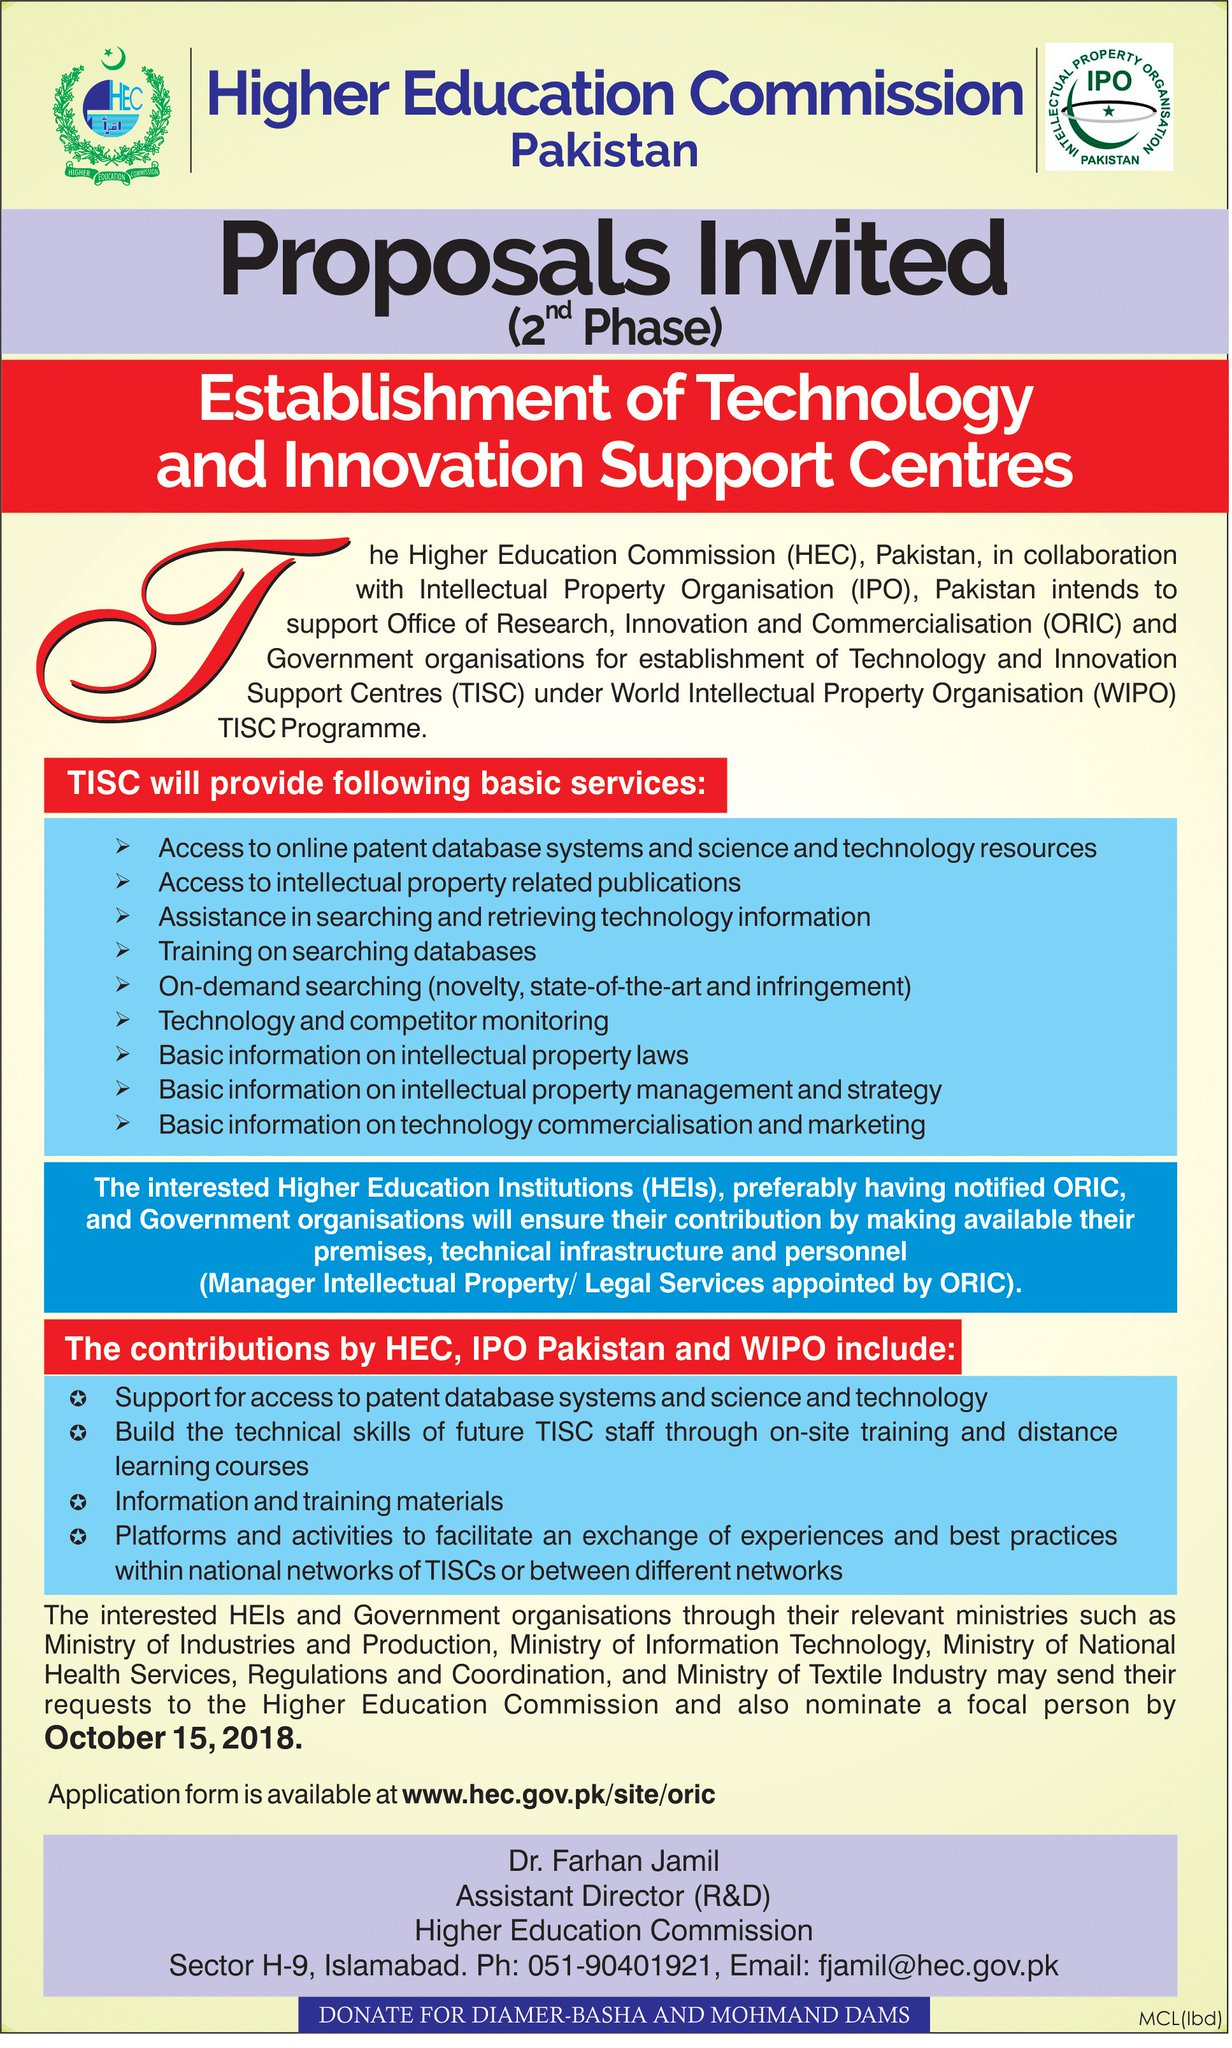 HEC Pakistan on Twitter: